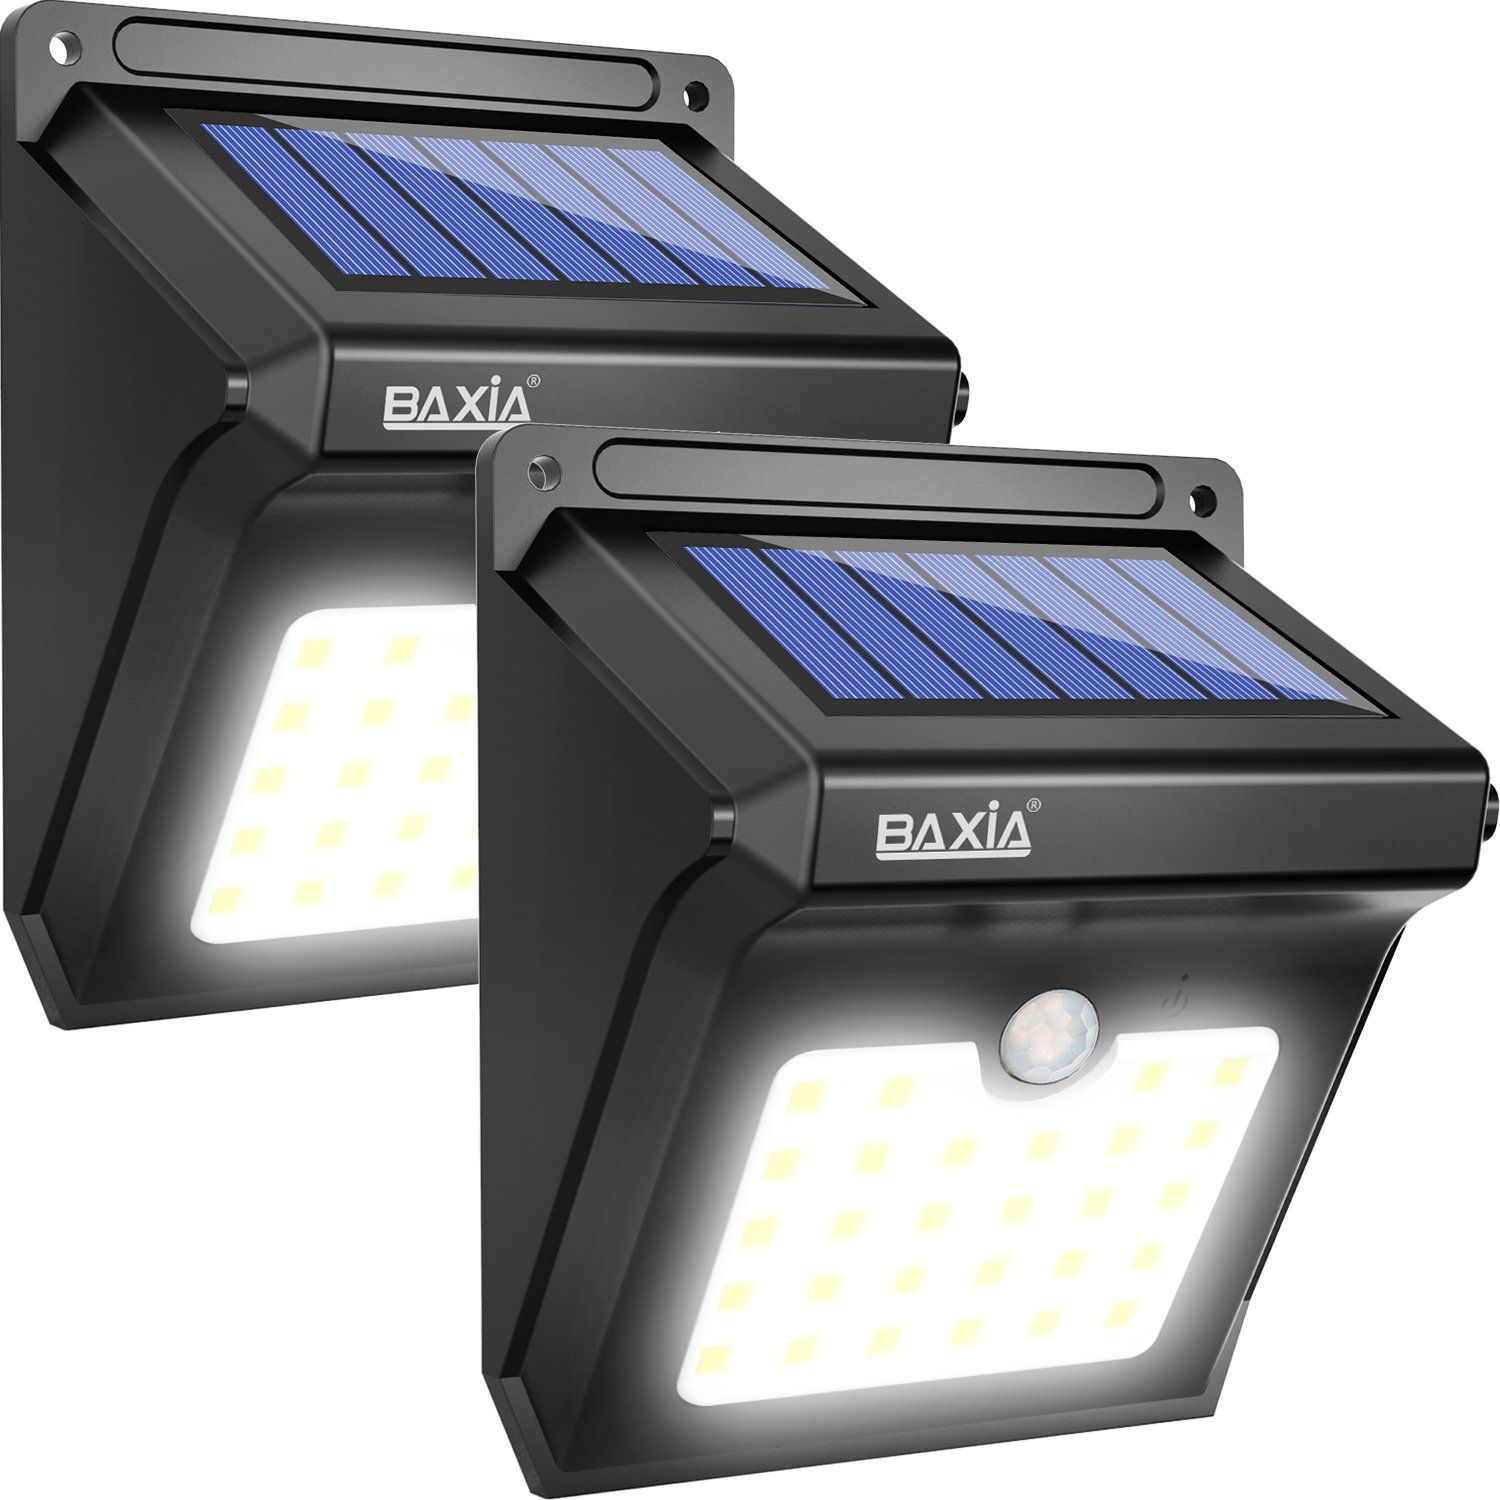 Baxia technology solar lights led solar motion sensor security baxia technology solar lights led solar motion sensor security lights 400 lumen aloadofball Choice Image